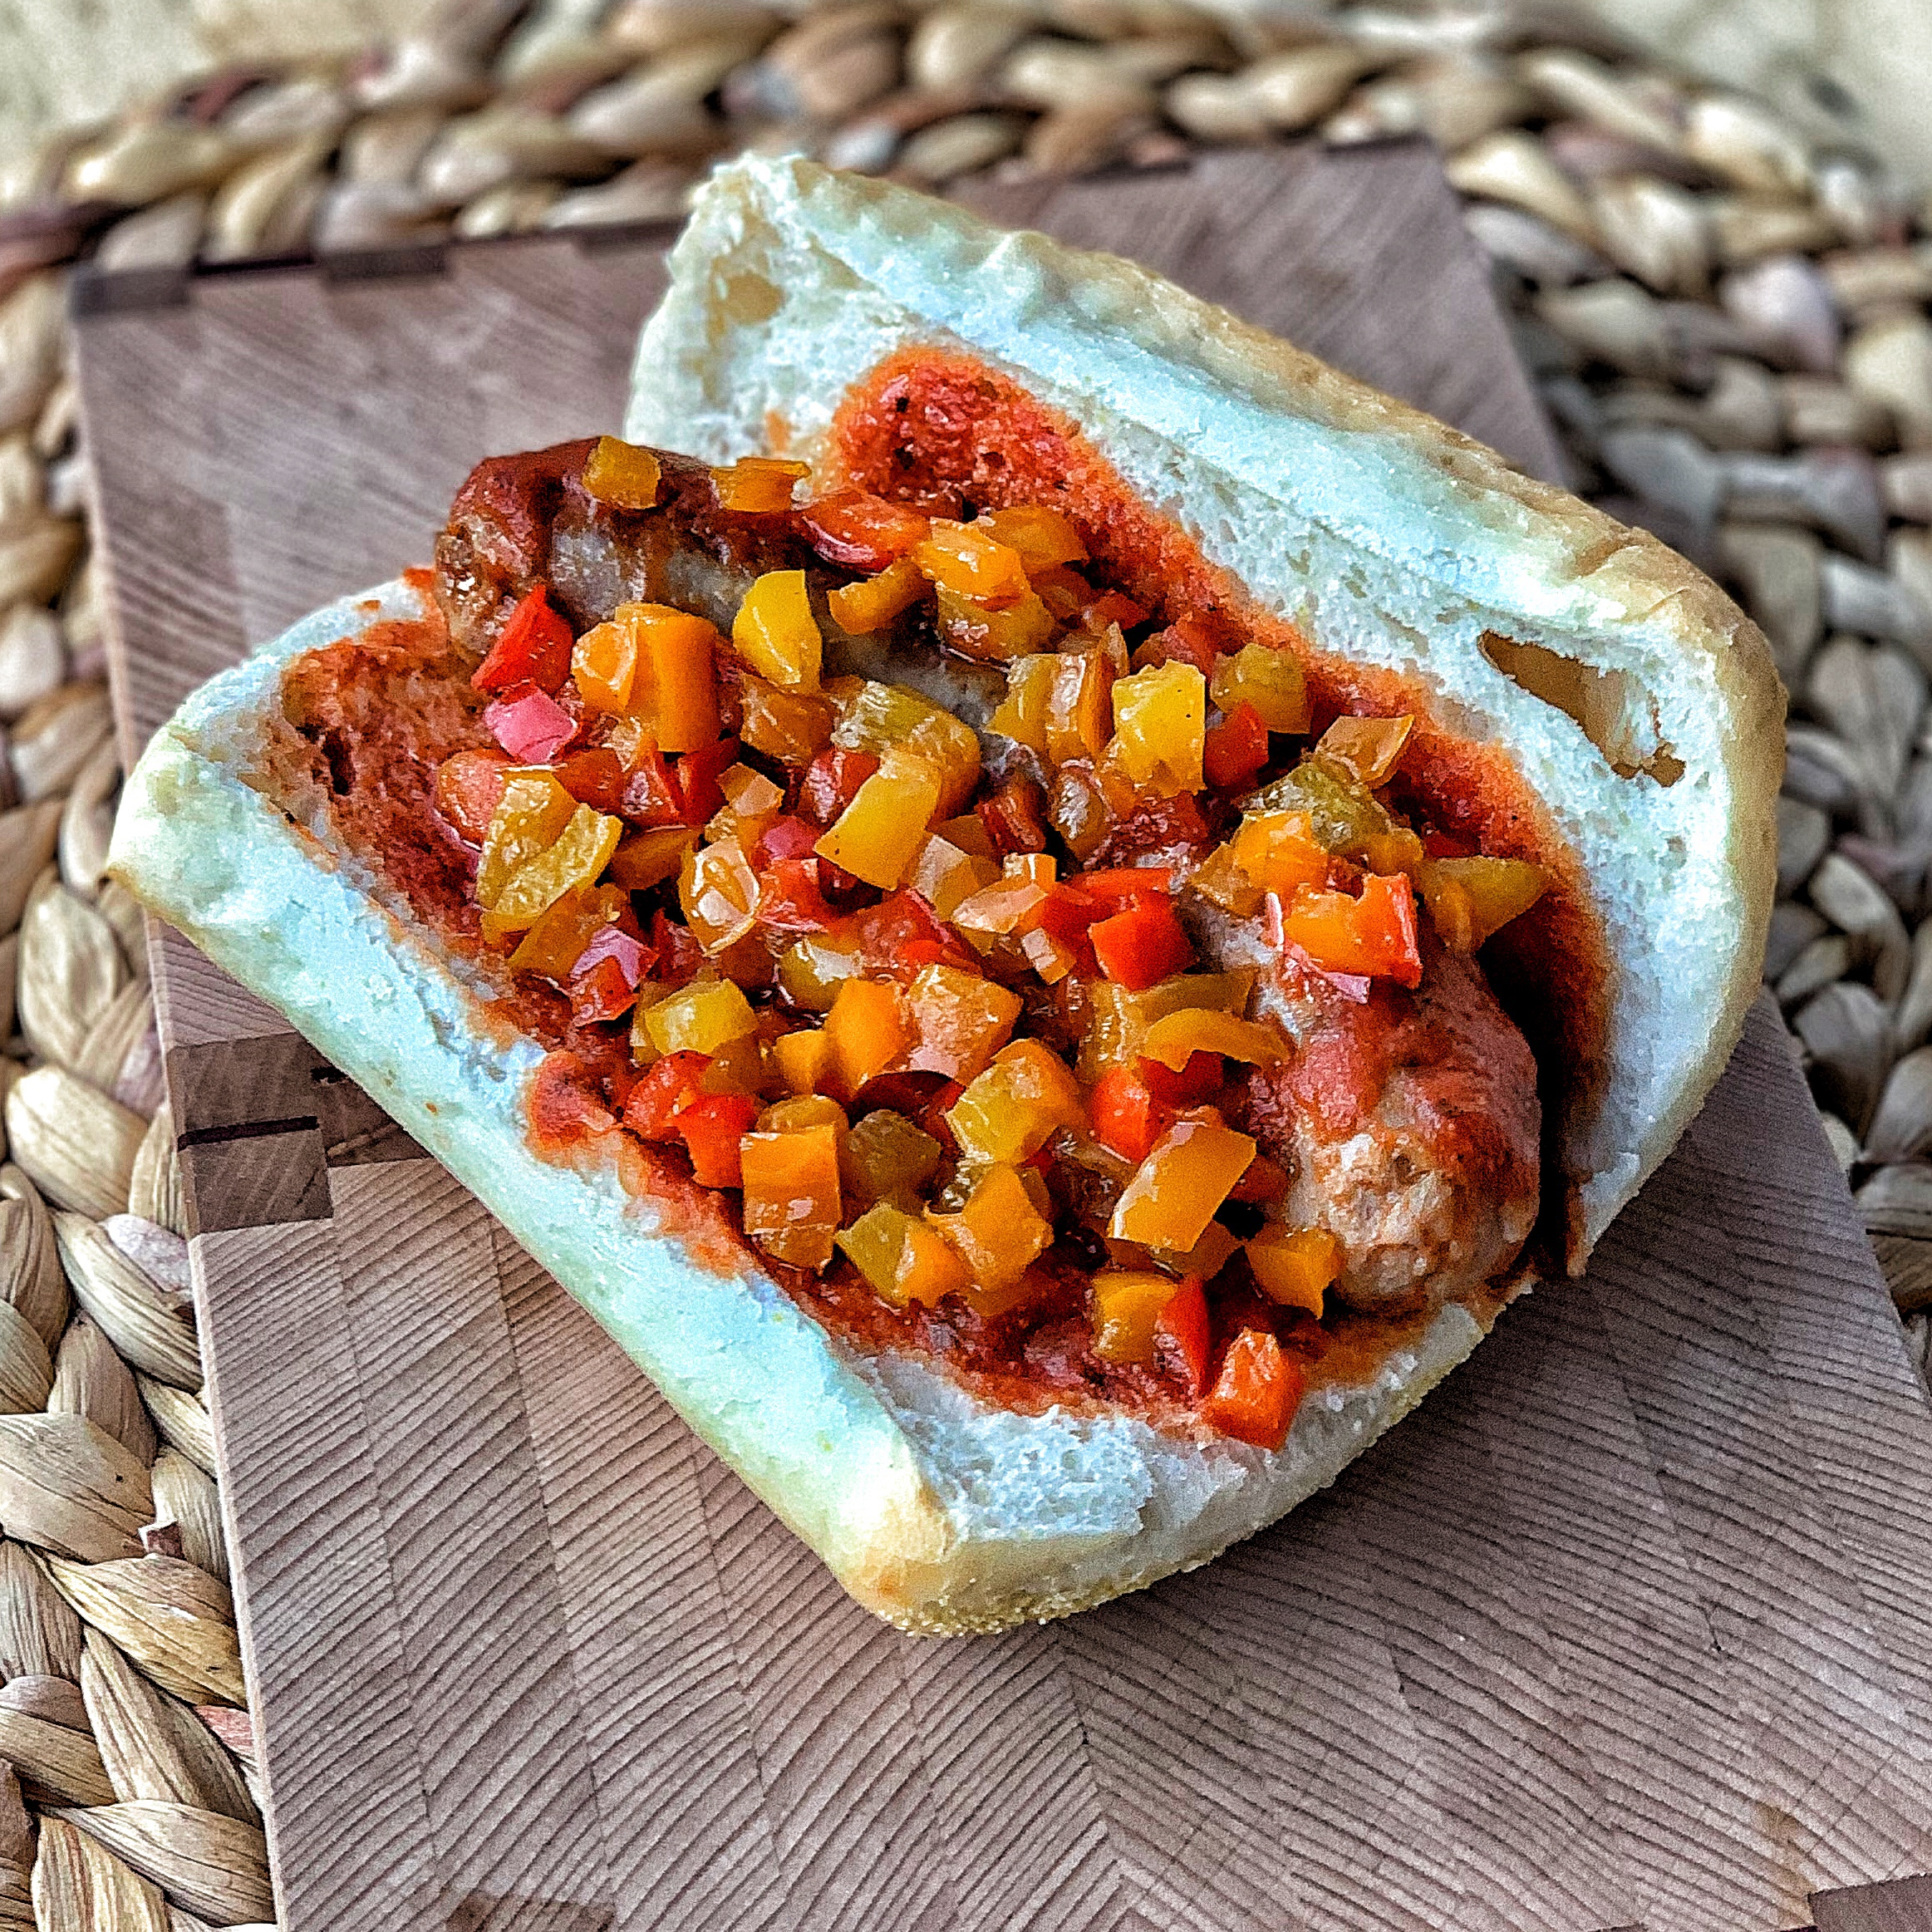 Open faced sausage sadnwich with colorful peppers and marinara sauce.